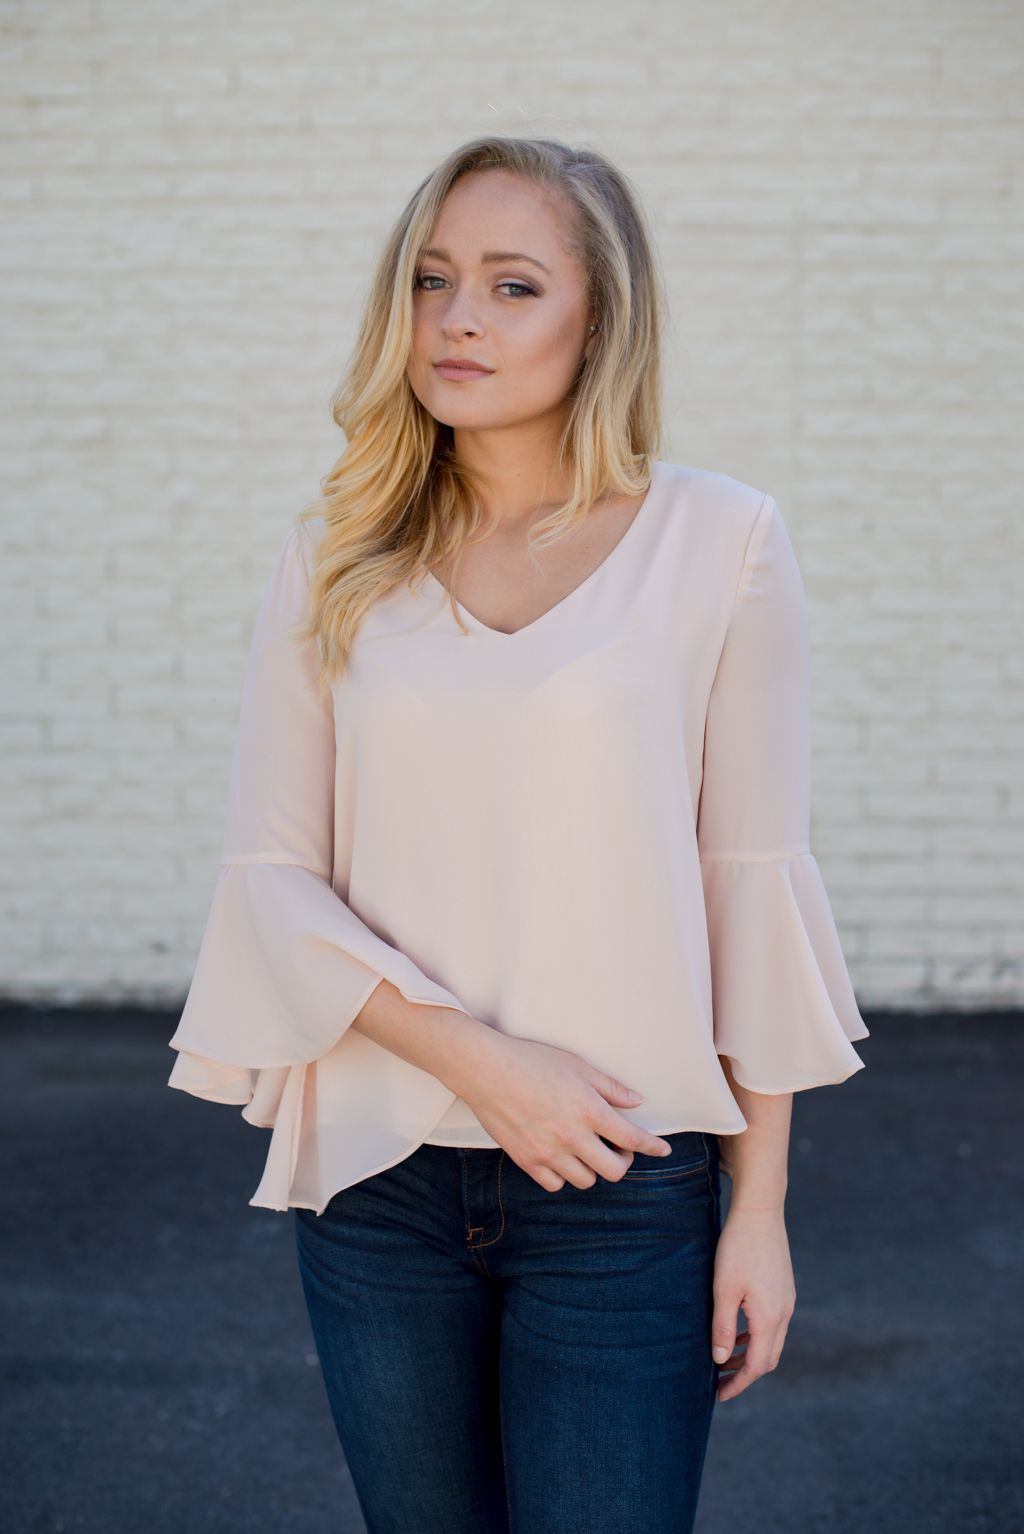 Hopeless Romantic Blouse Sheer Fabrics Blush Pink And Compliments